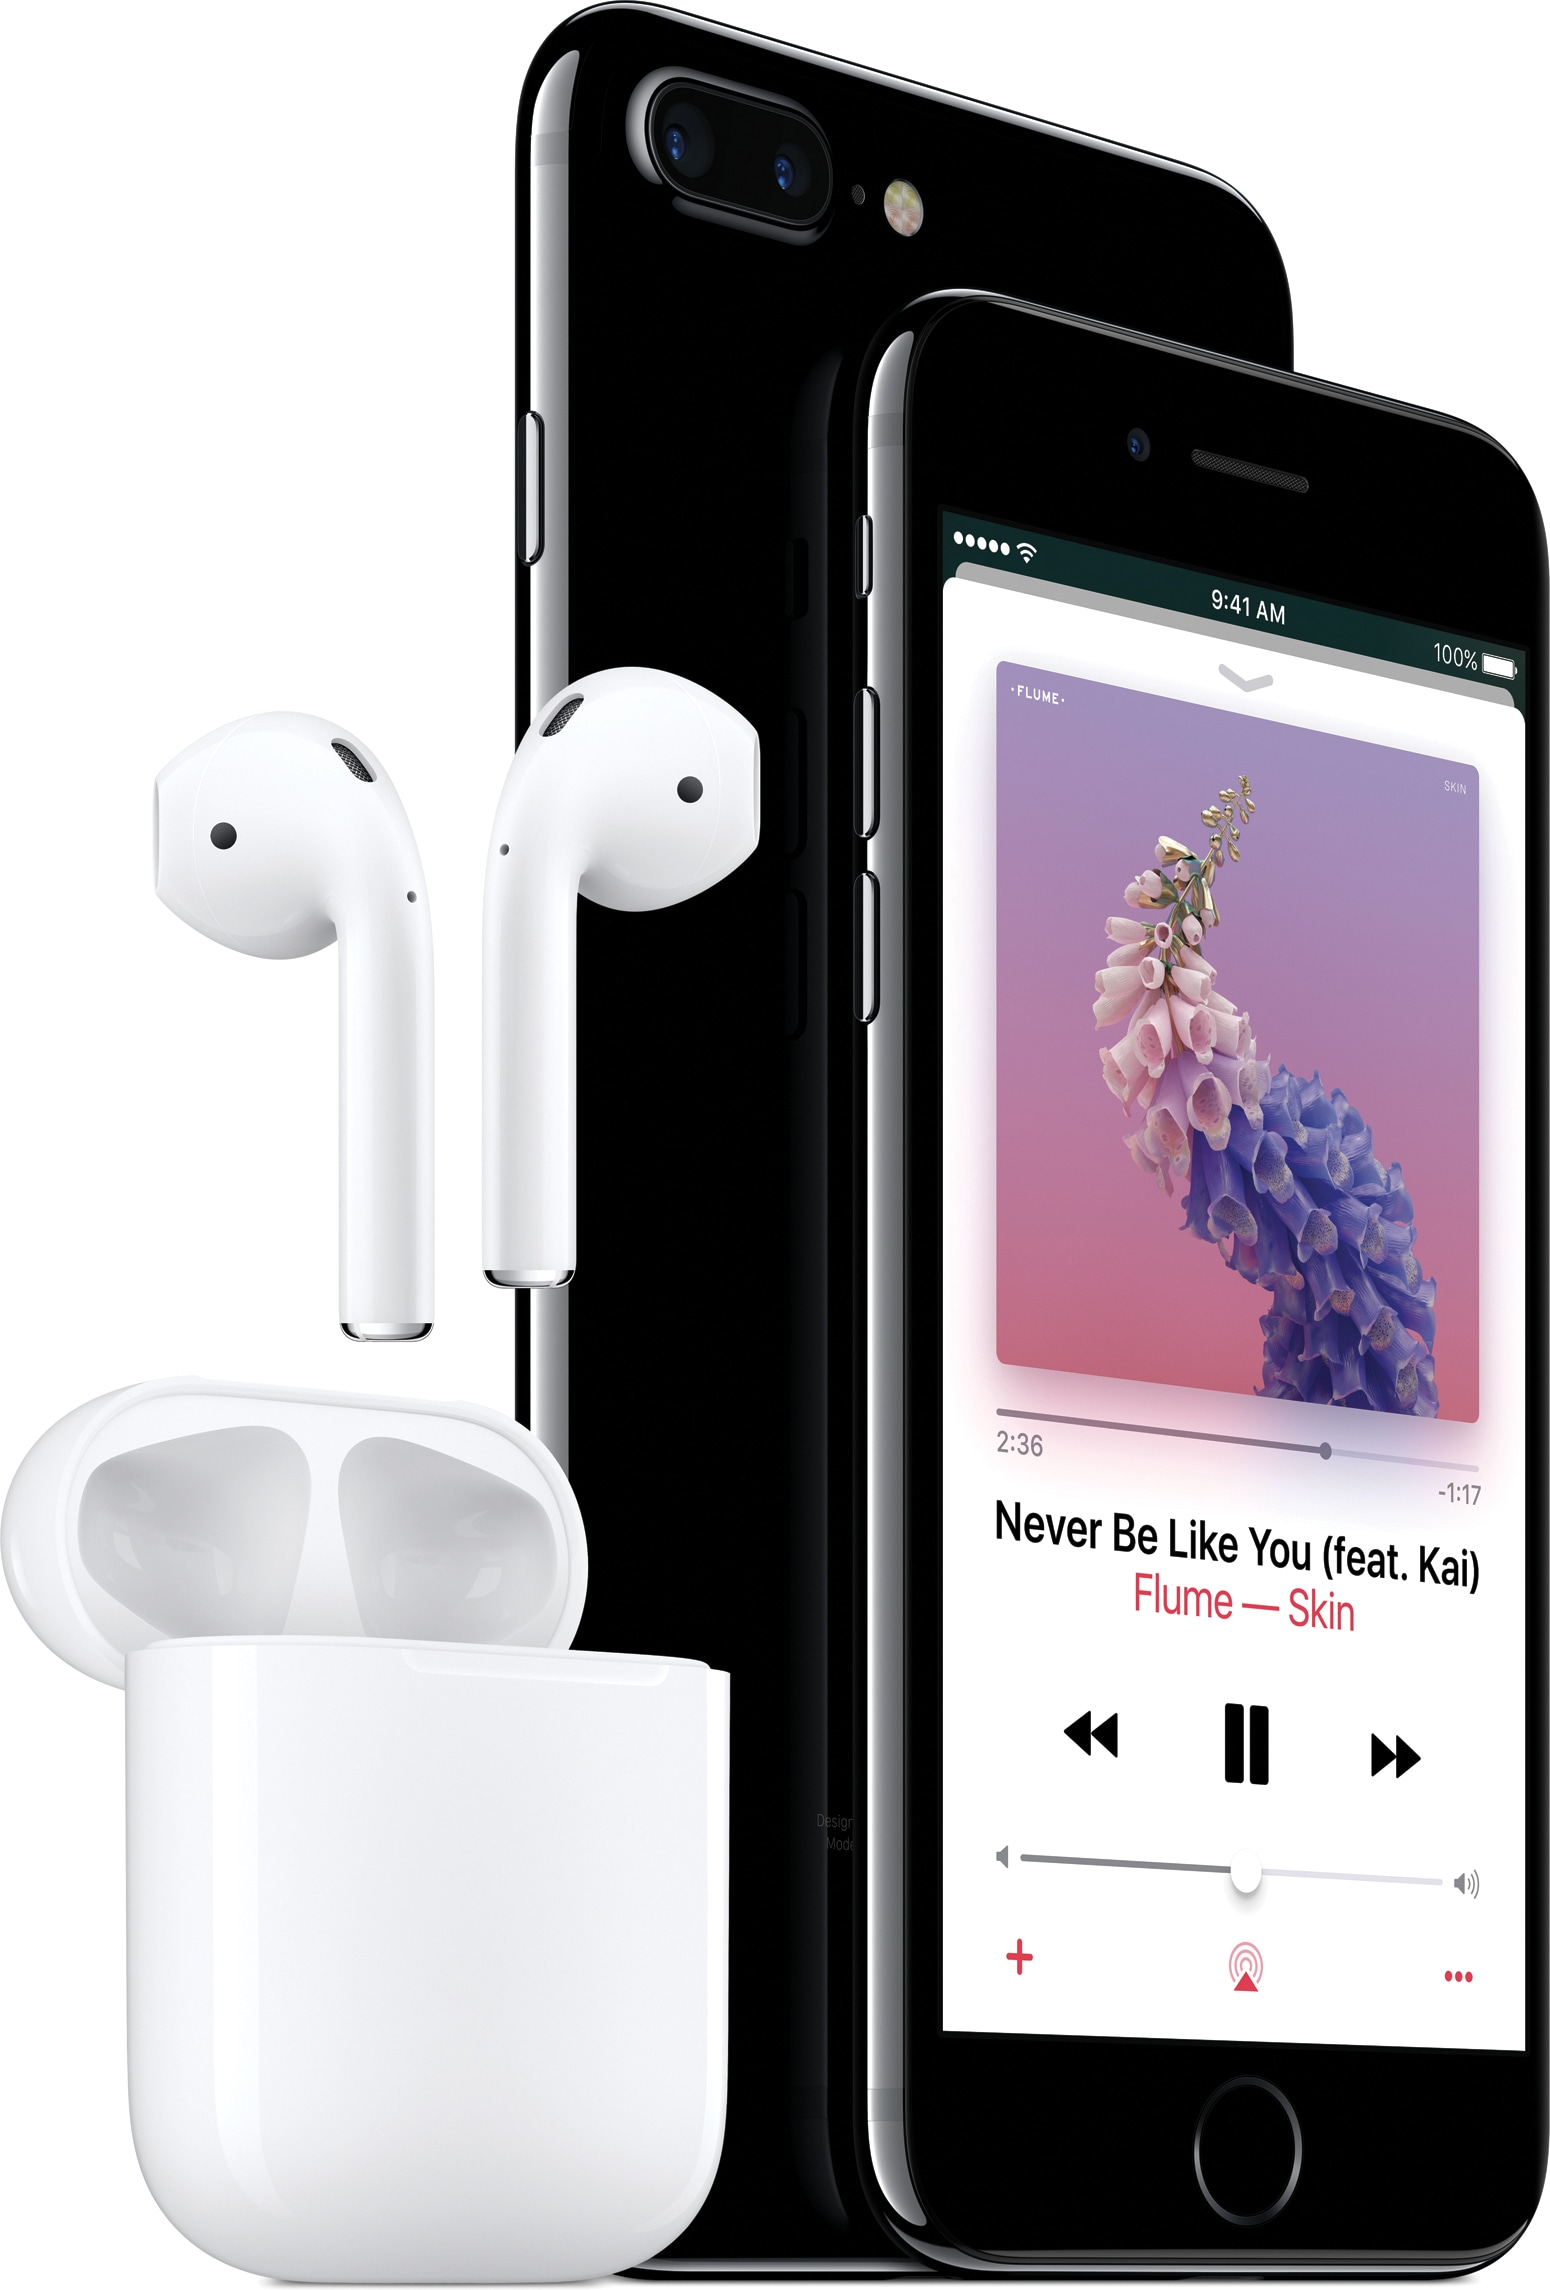 AirPods voando para fora do estojo com iPhones 7 do lado